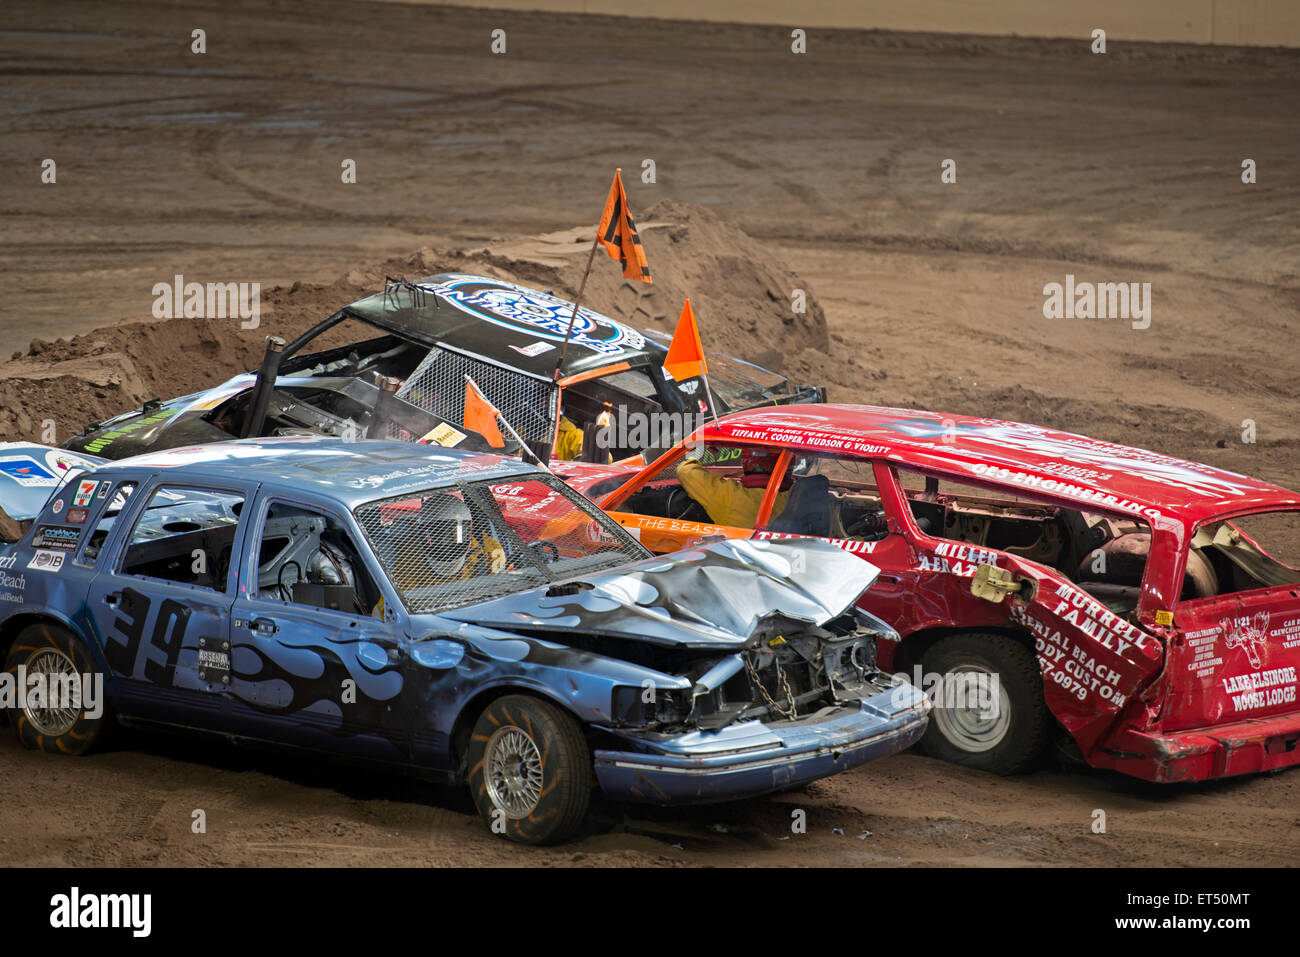 cars in demolition derby san diego county fair del mar california stock photo royalty free. Black Bedroom Furniture Sets. Home Design Ideas